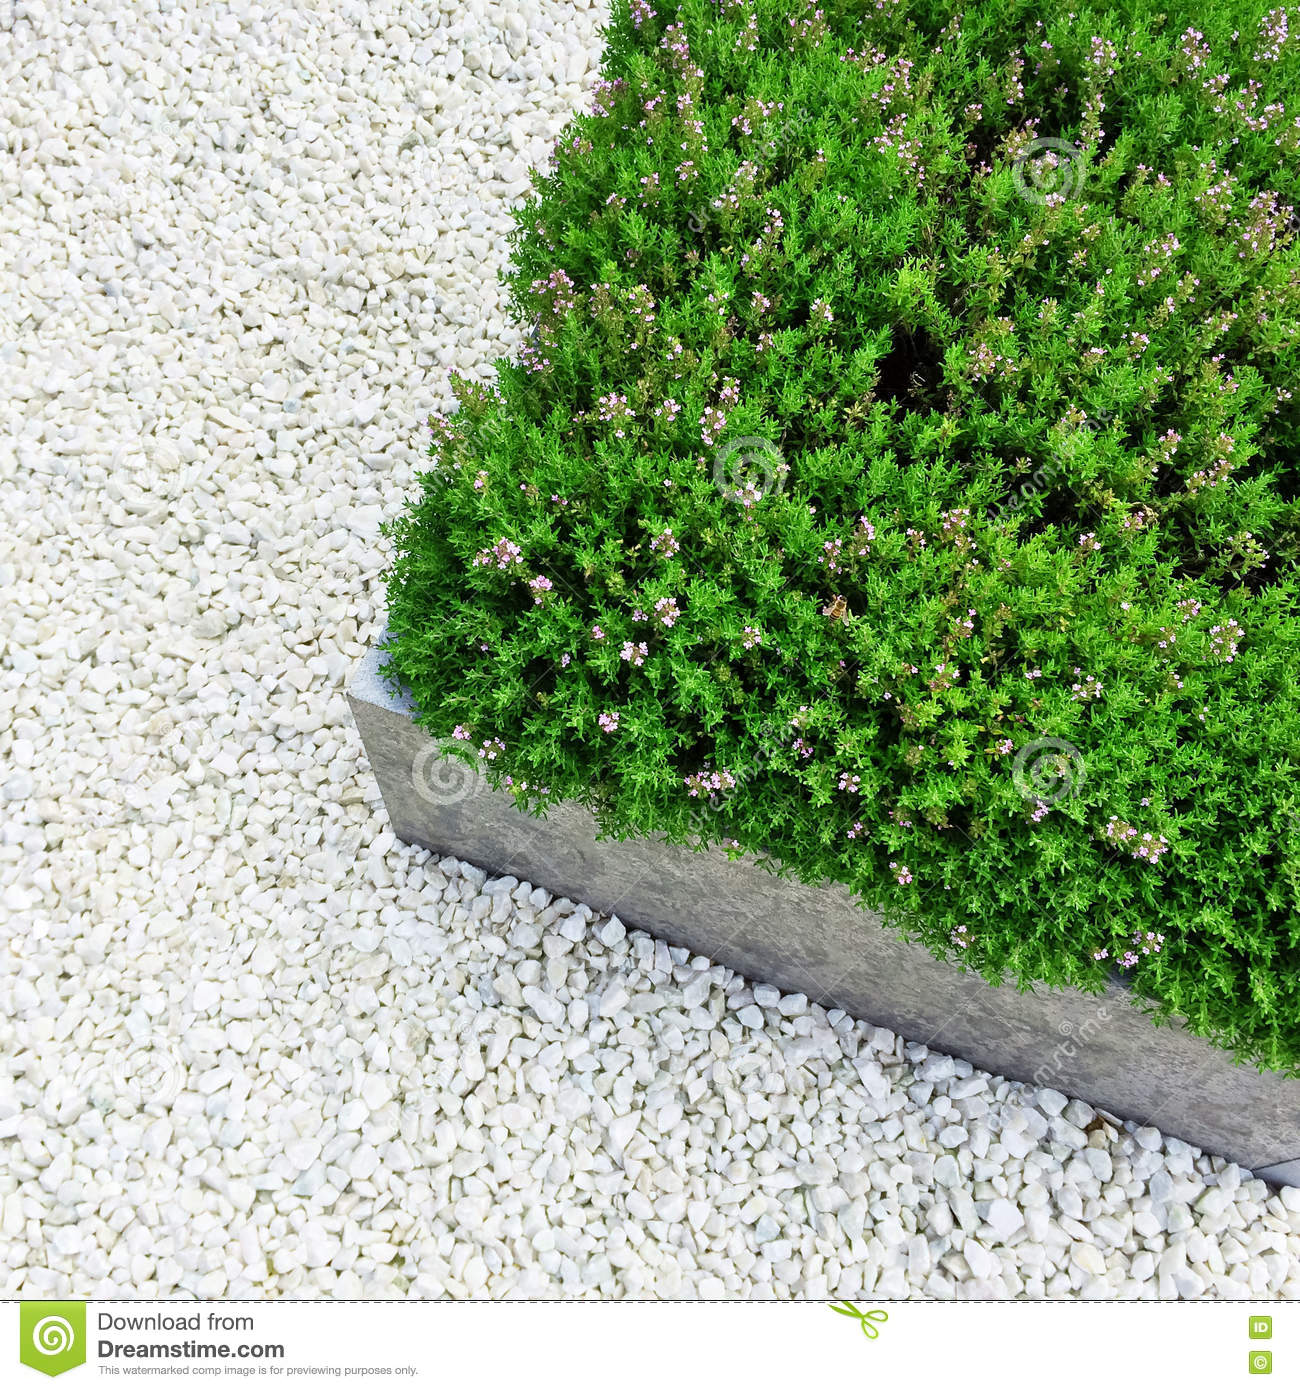 blooming plants on white stone background stock photo - image